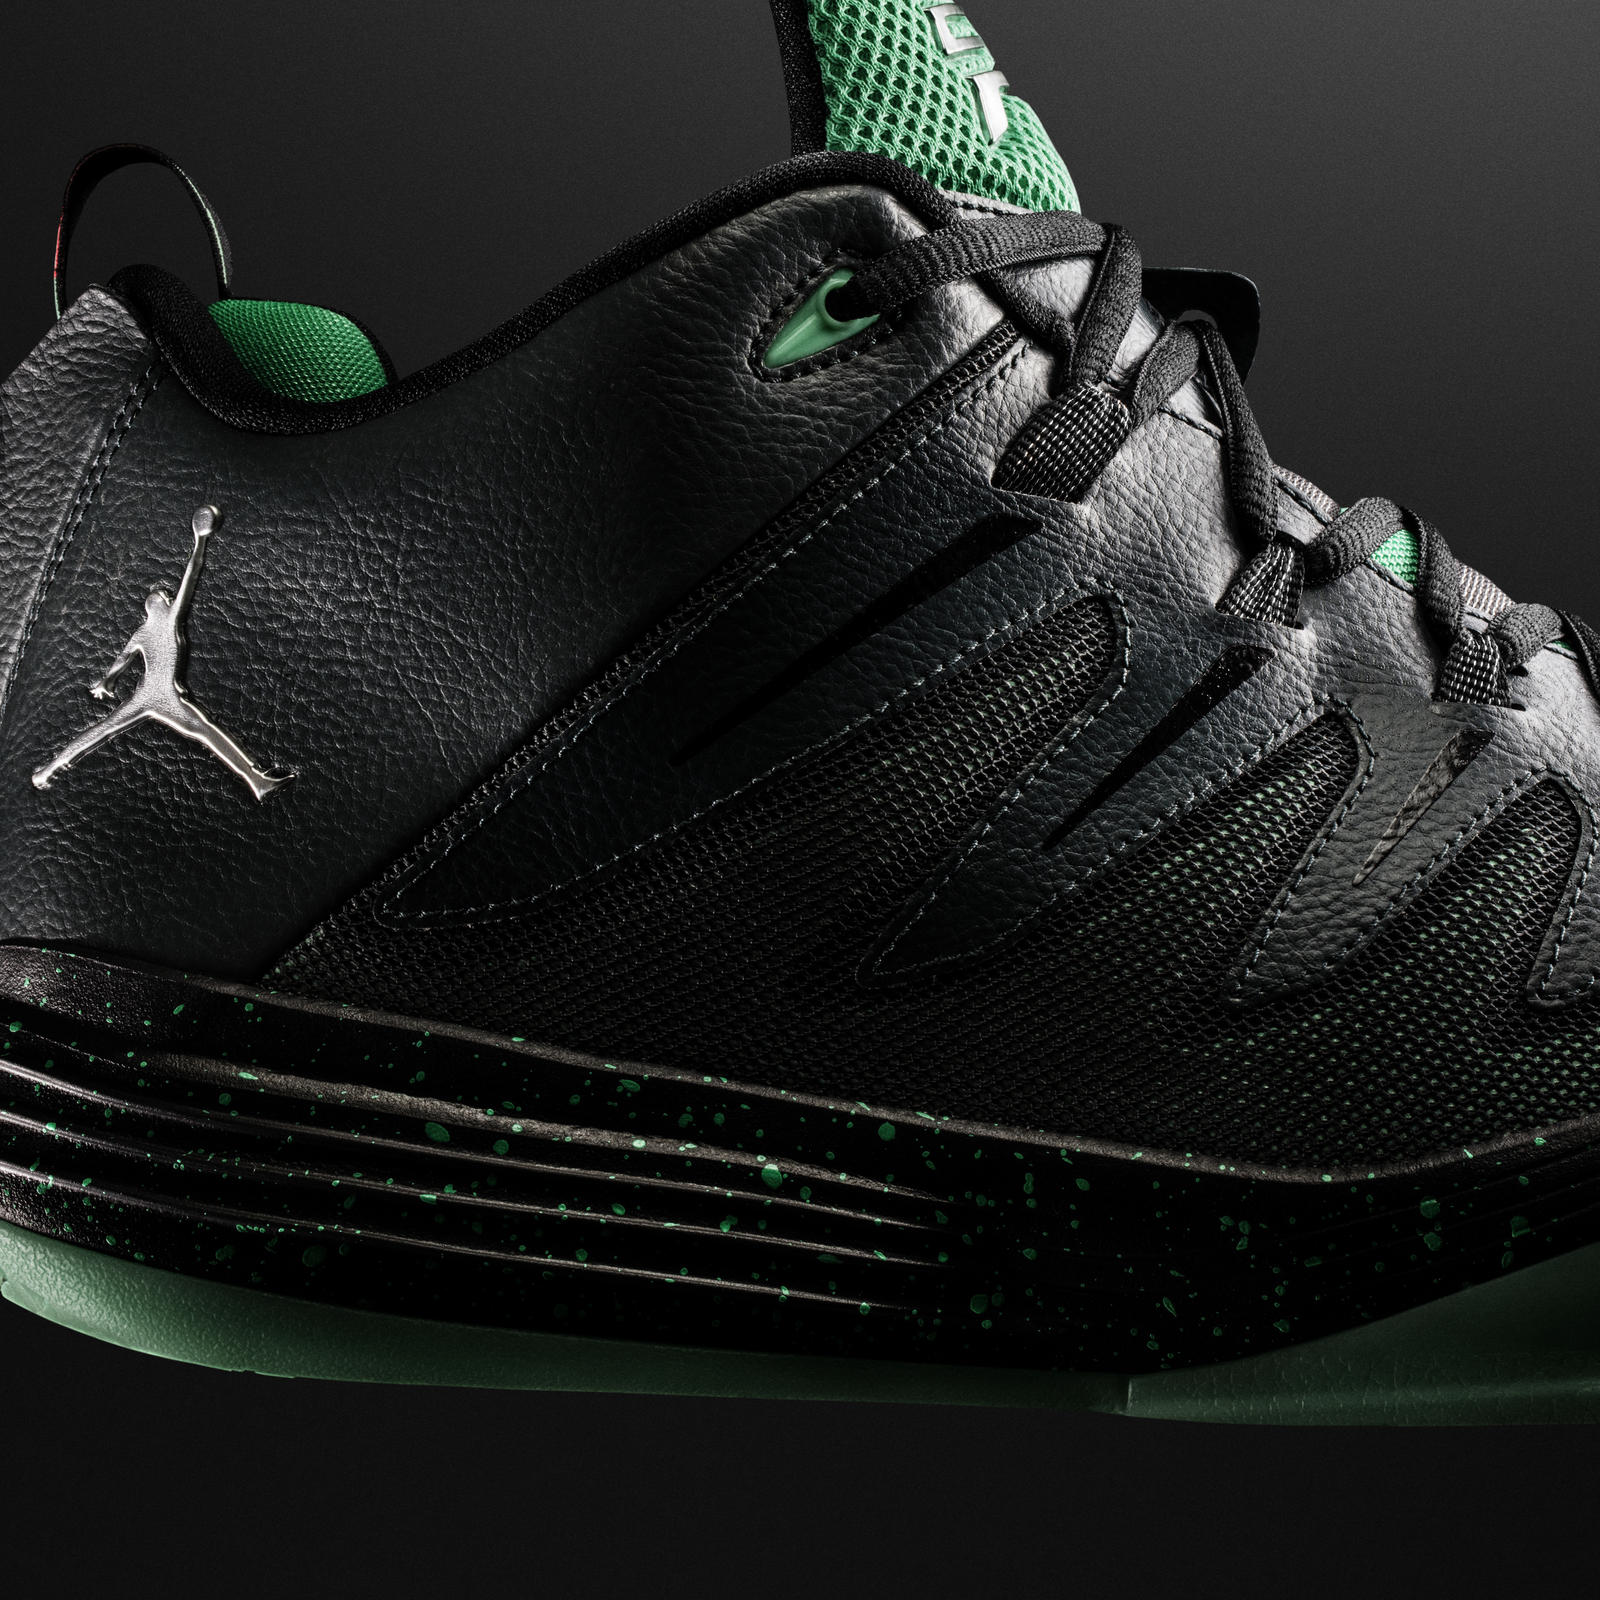 the best attitude a4104 e9caa Jordan CP3.IX Emerald